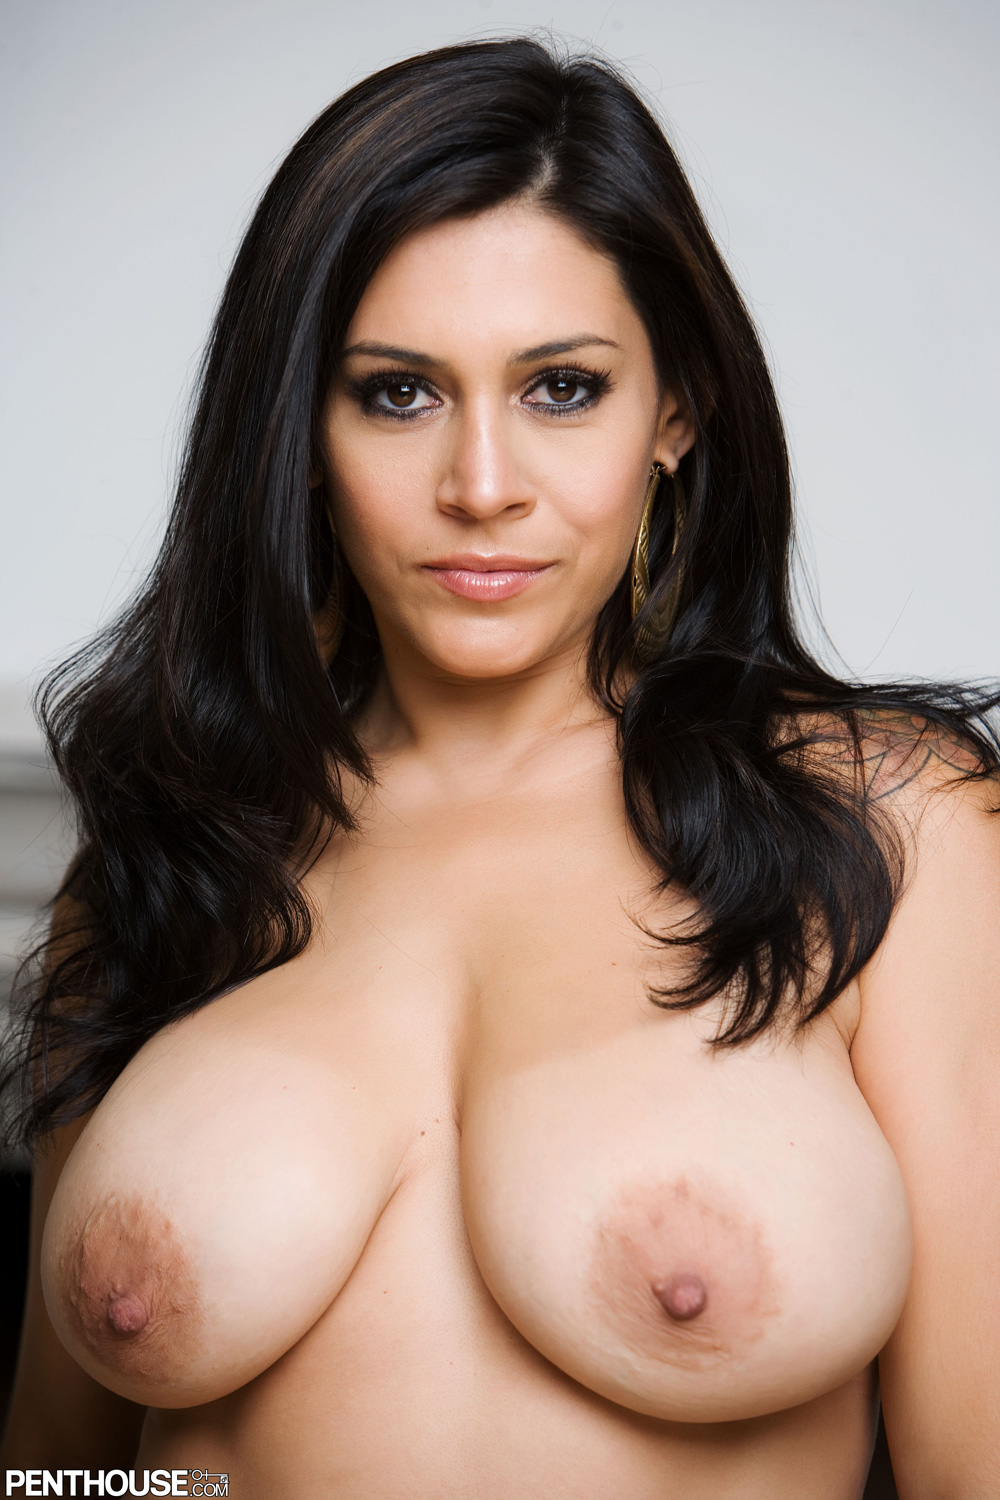 Apologise, but, Raylene porn star nude simply